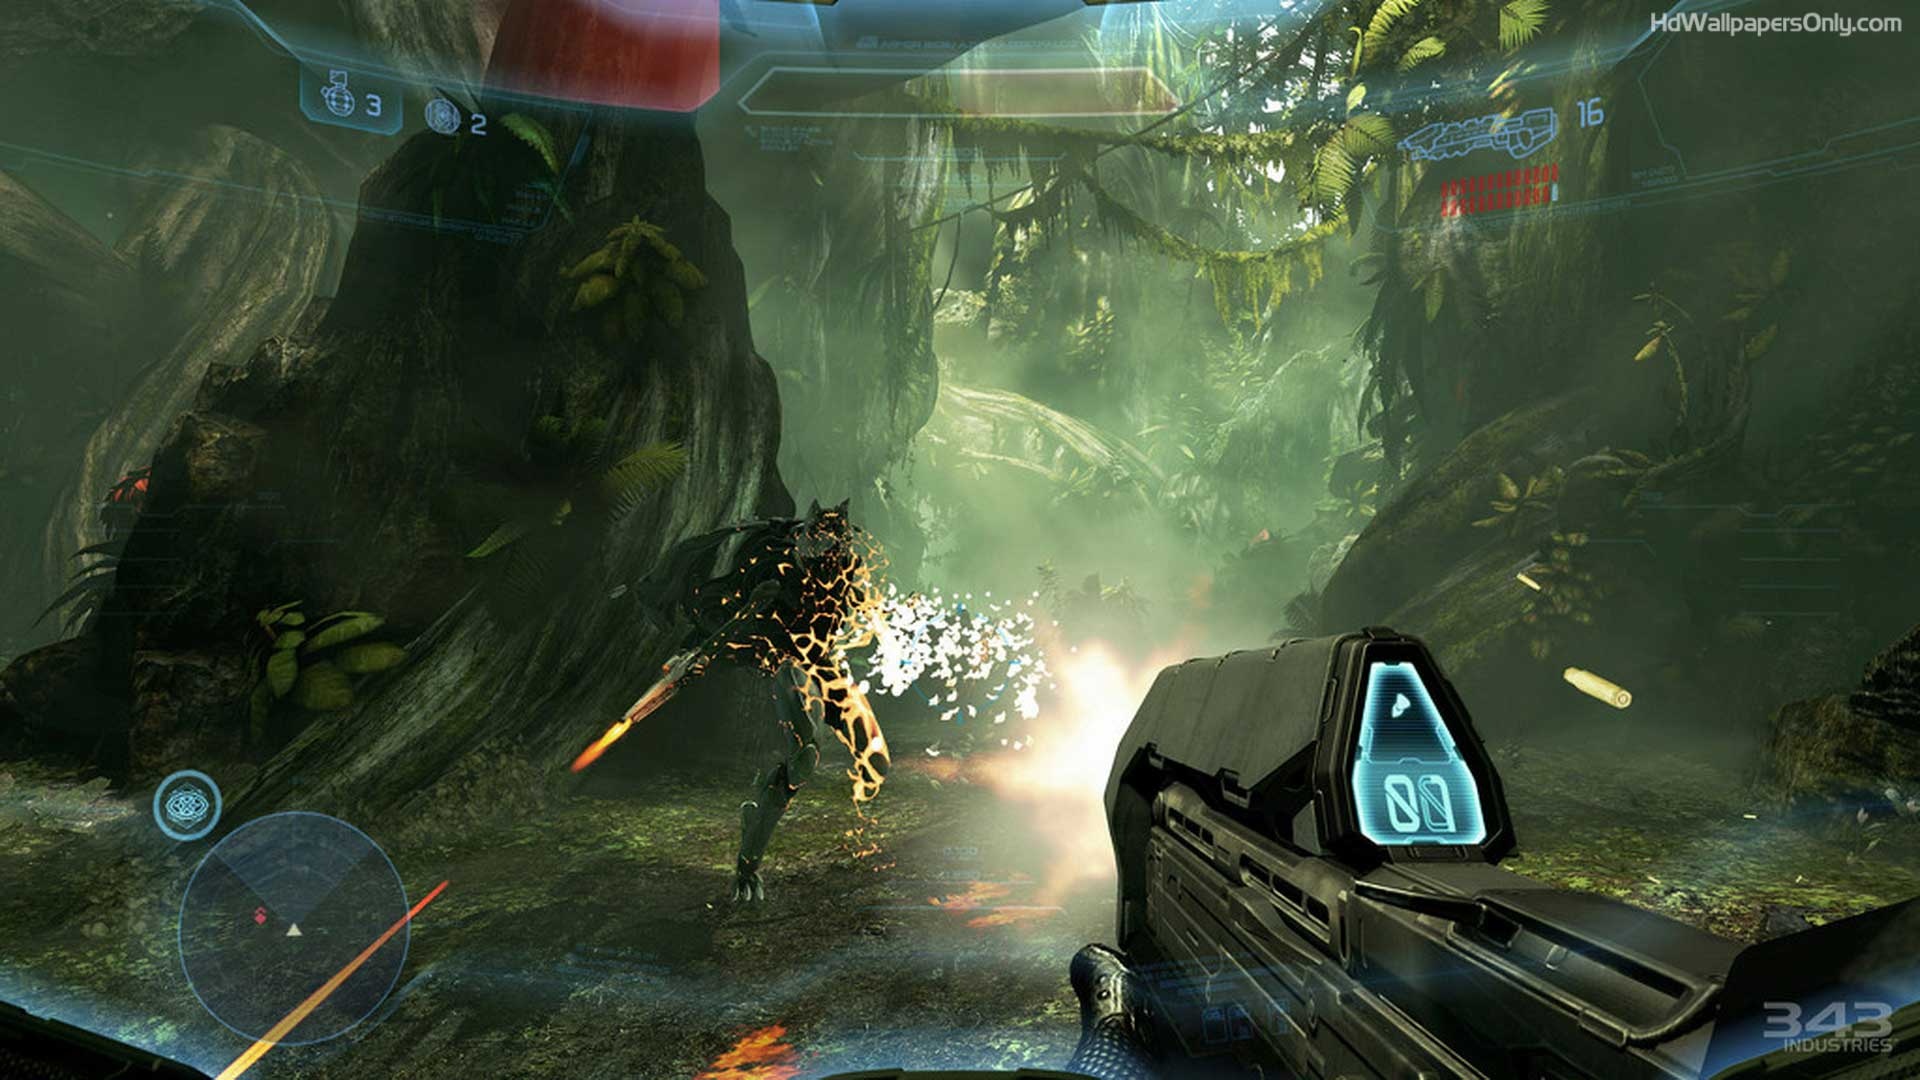 Halo 4 Wallpapers & Screenshots HD Pictures From